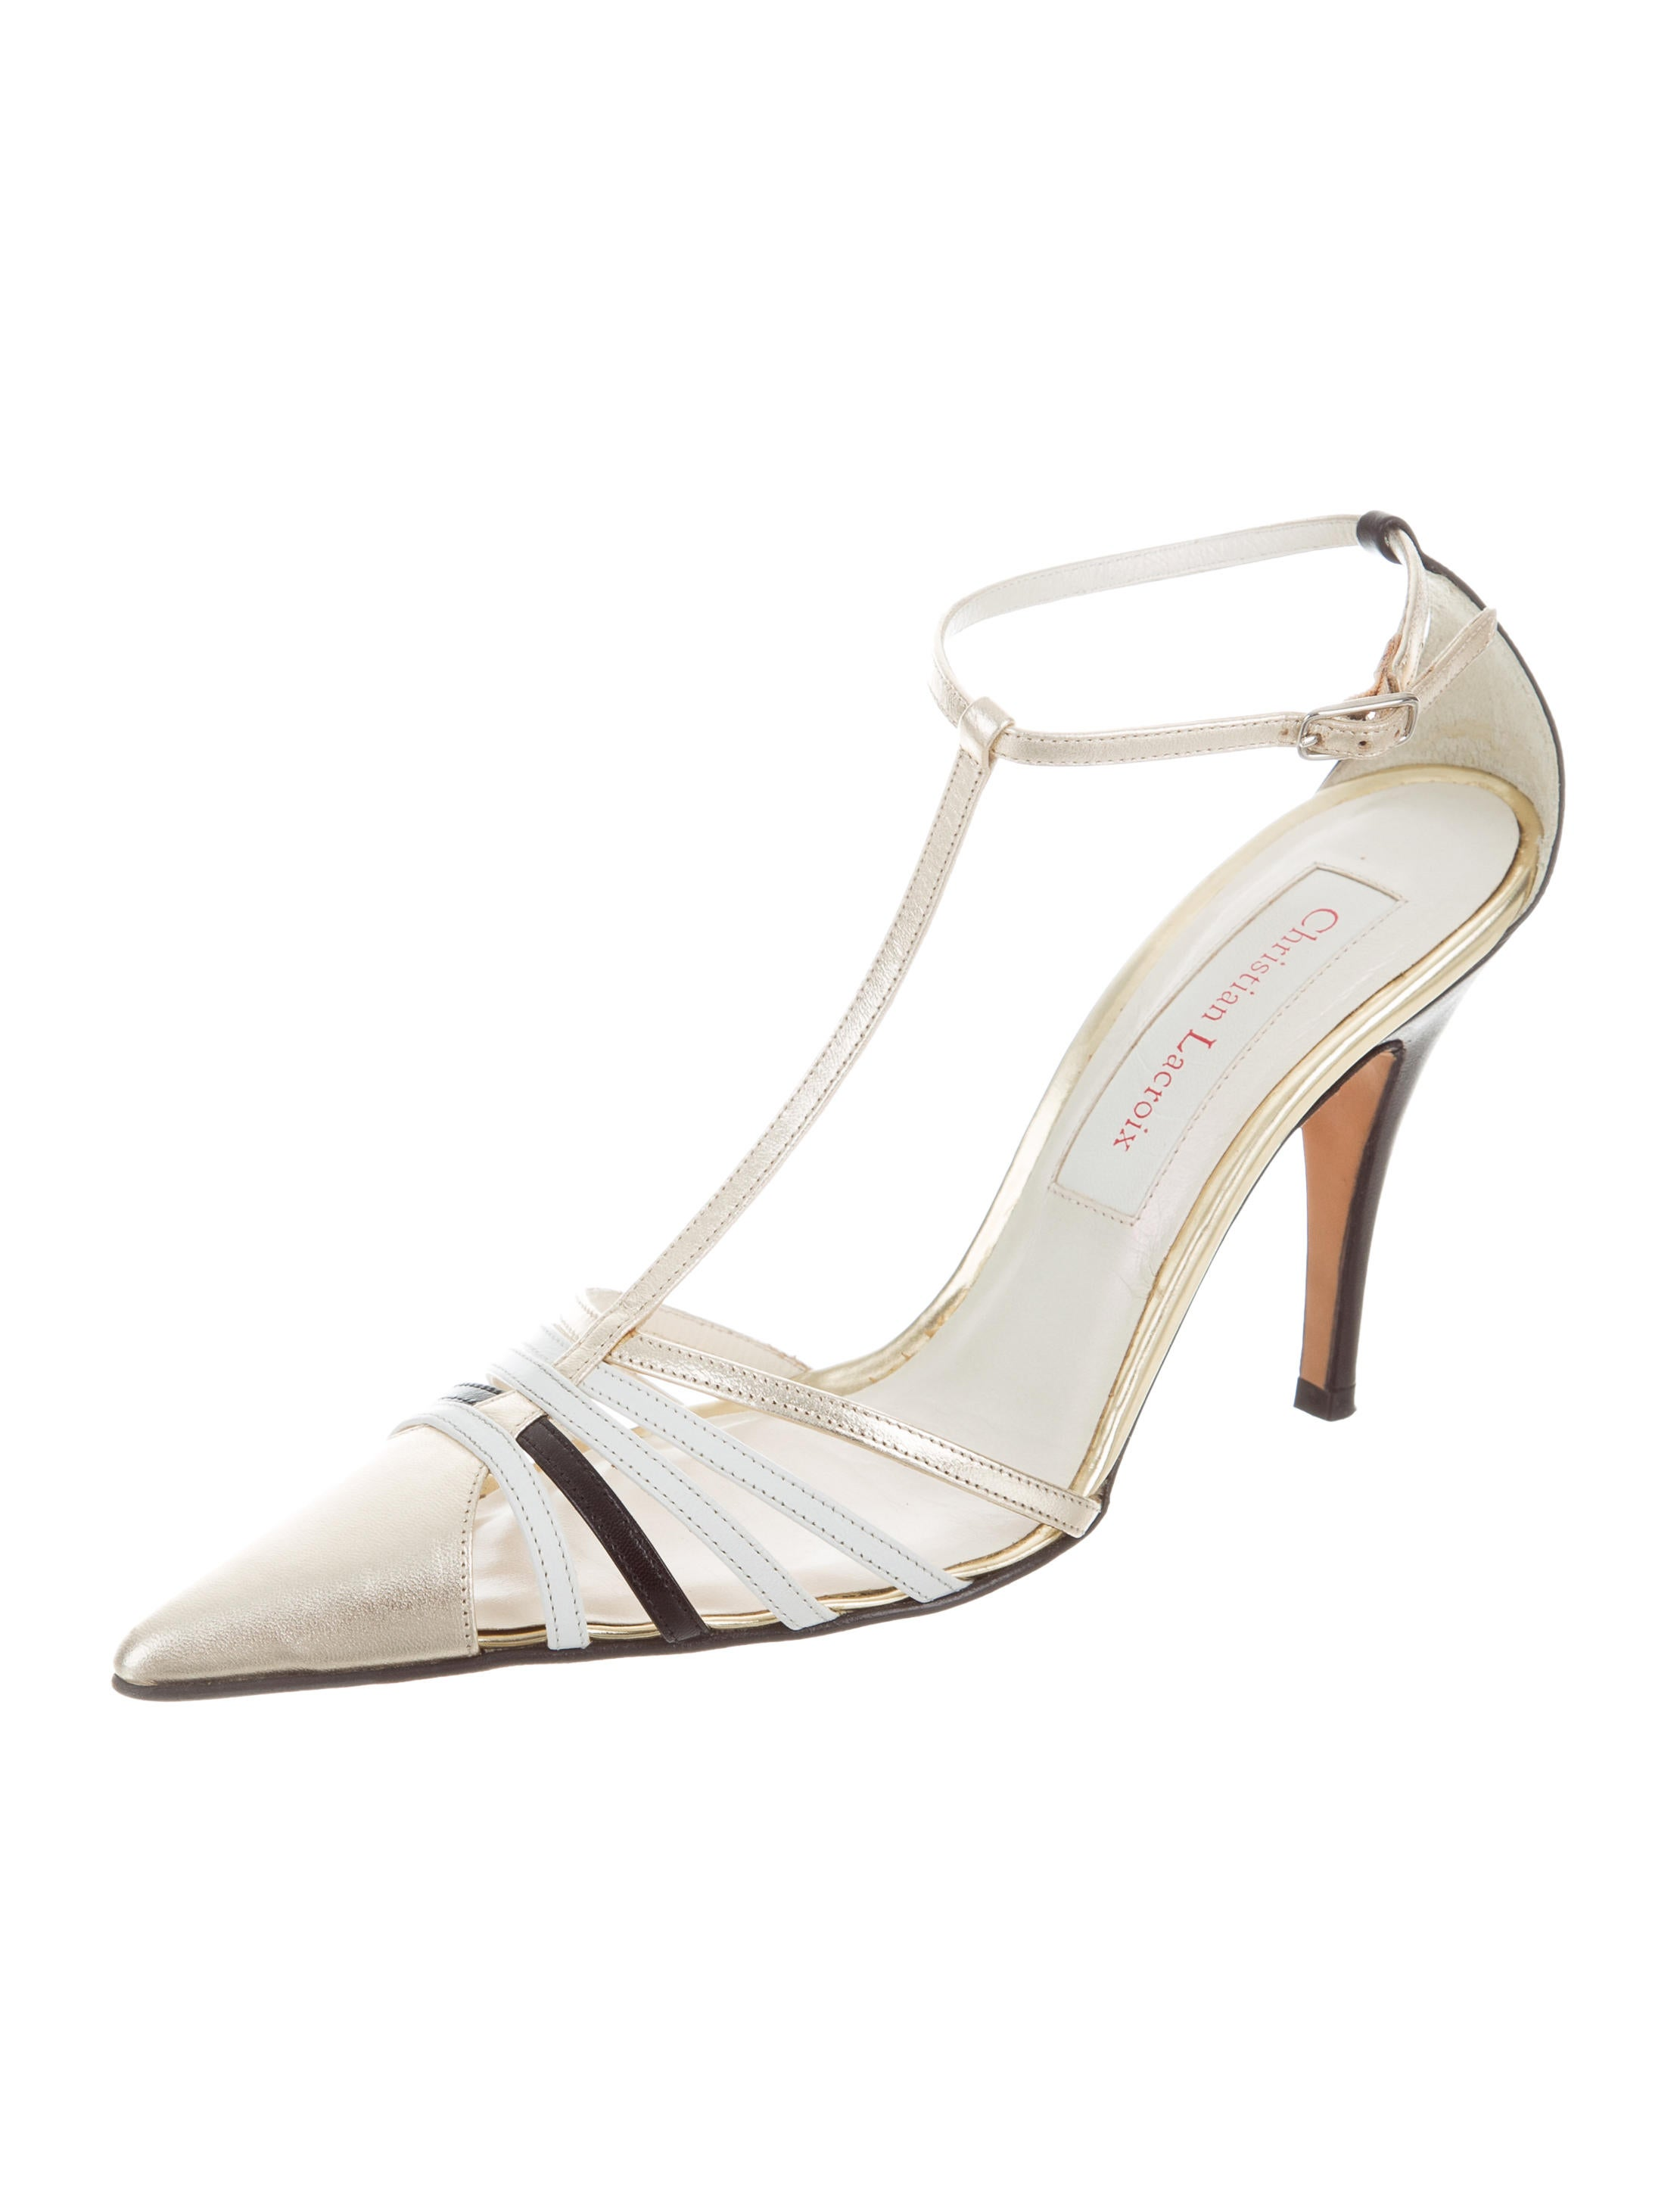 Christian Lacroix Leather Ankle Strap Pumps online cheap quality sale fashionable extremely for sale clearance low shipping fee professional for sale iiZdKk93